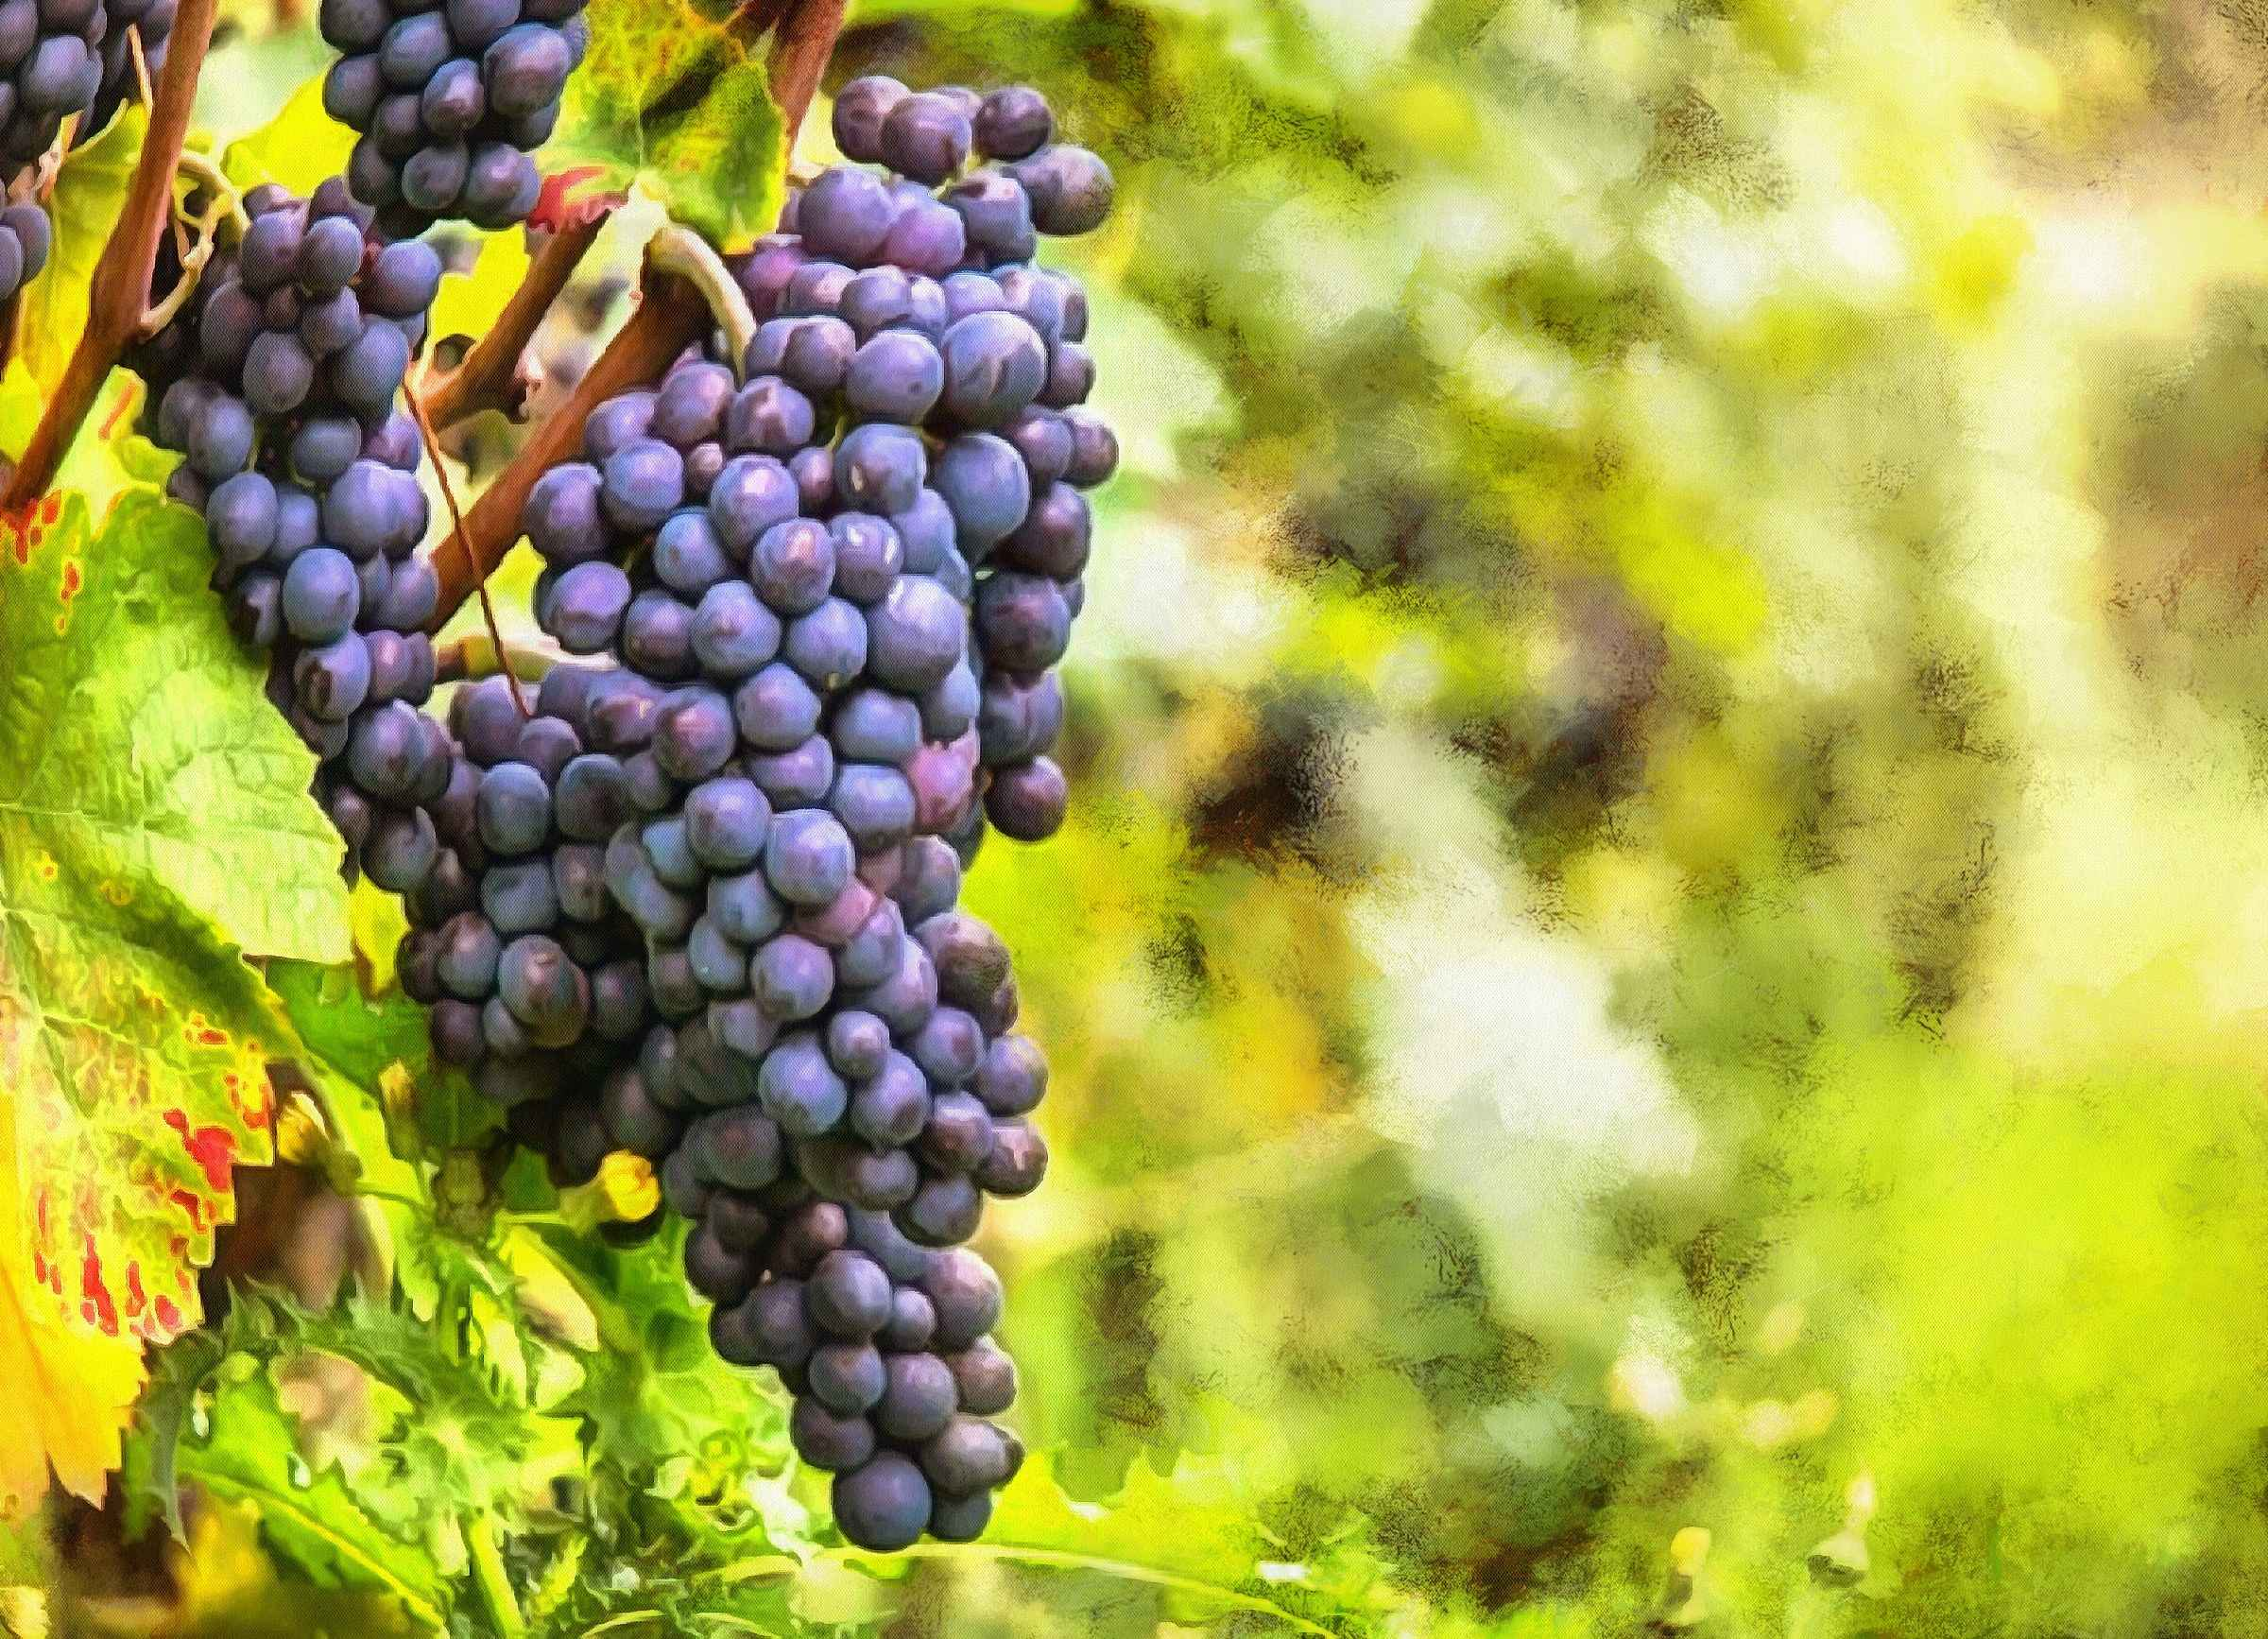 grape, grapes, large grapes, harvest, blue grapes,